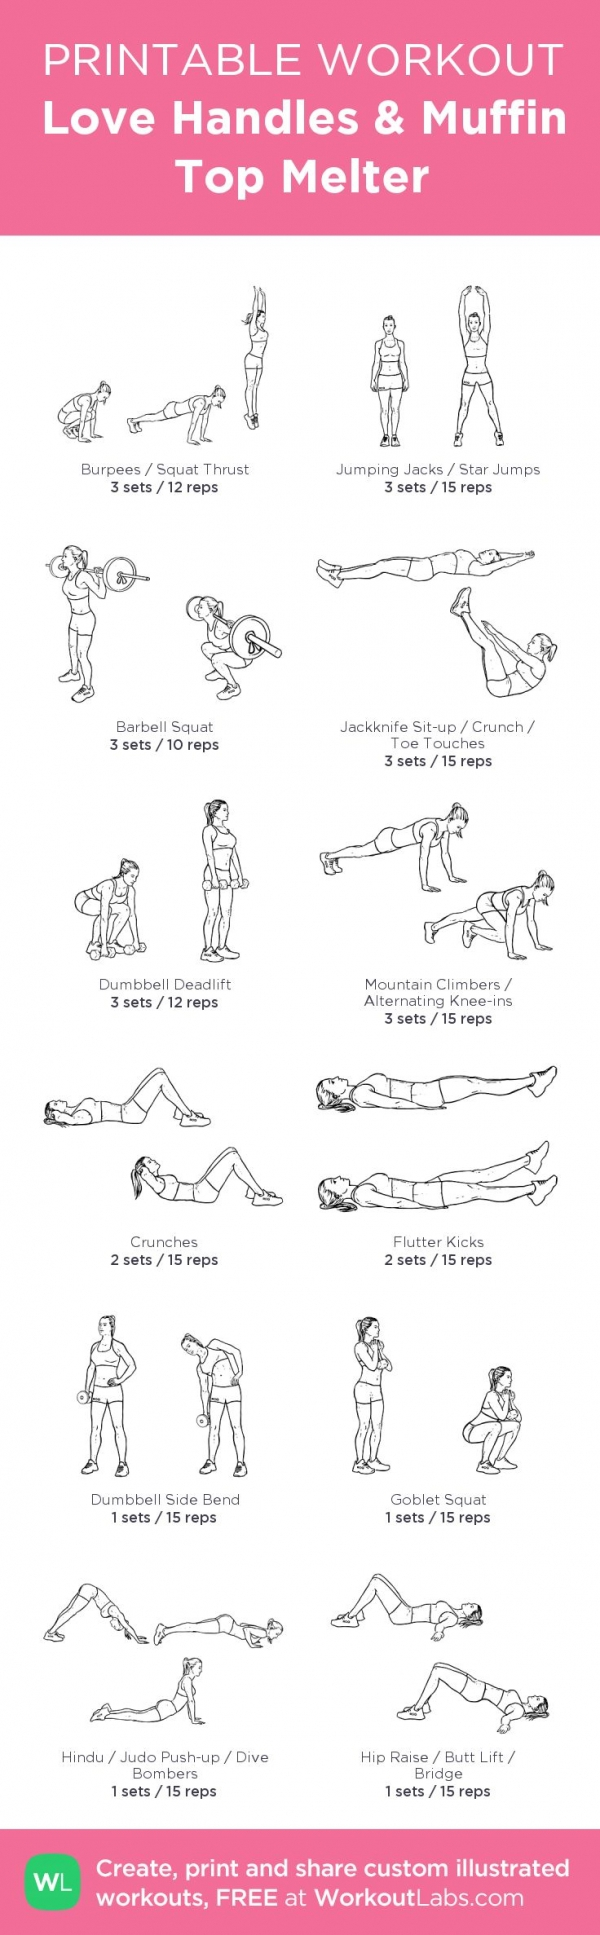 how to workout love handles at home